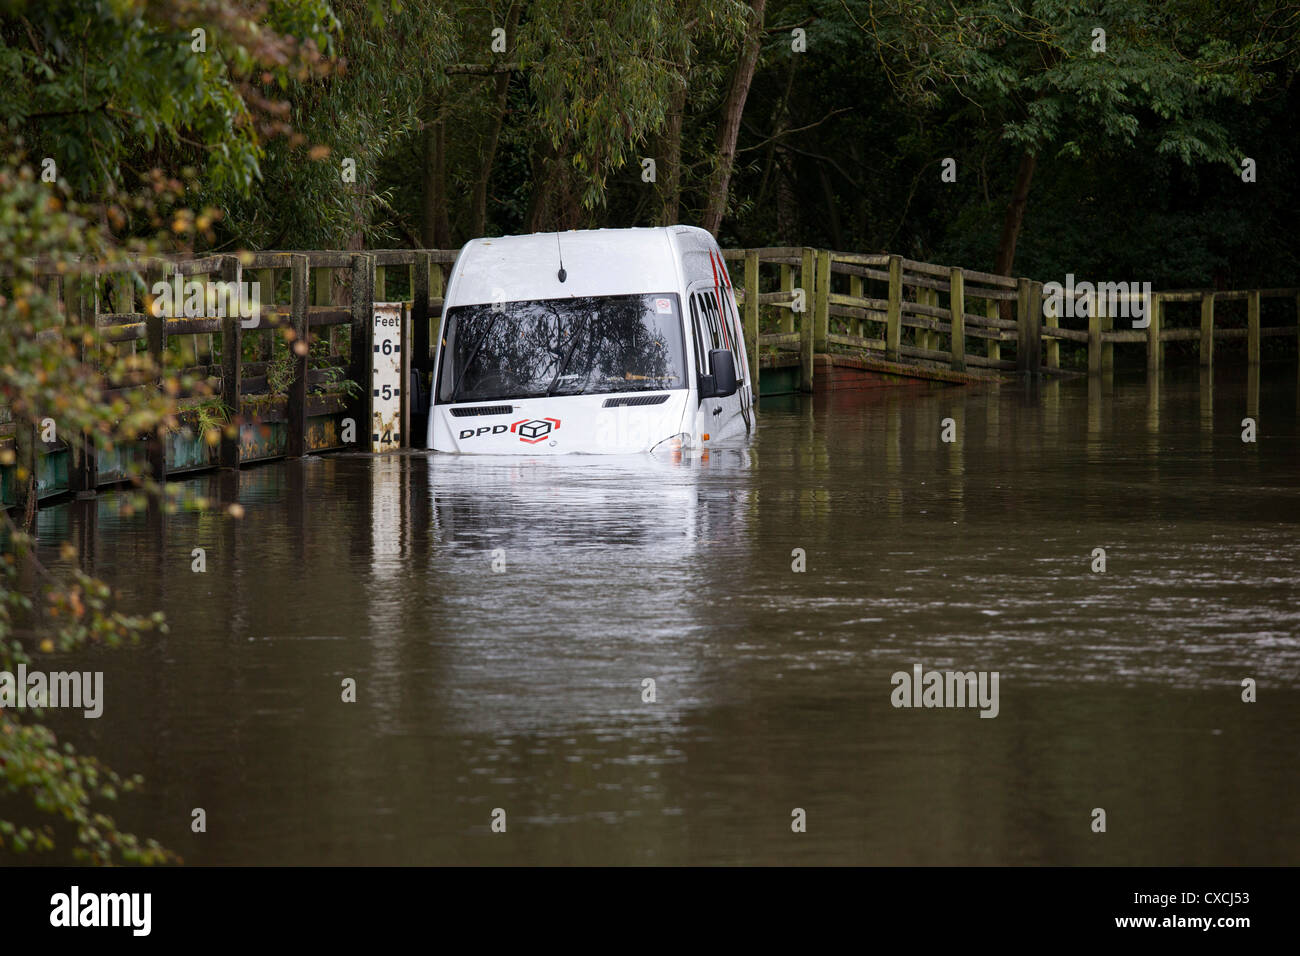 A parcel delivery van is trapped in a ford after heavy rain in Henwood Lane, Solihull, West Midlands. - Stock Image